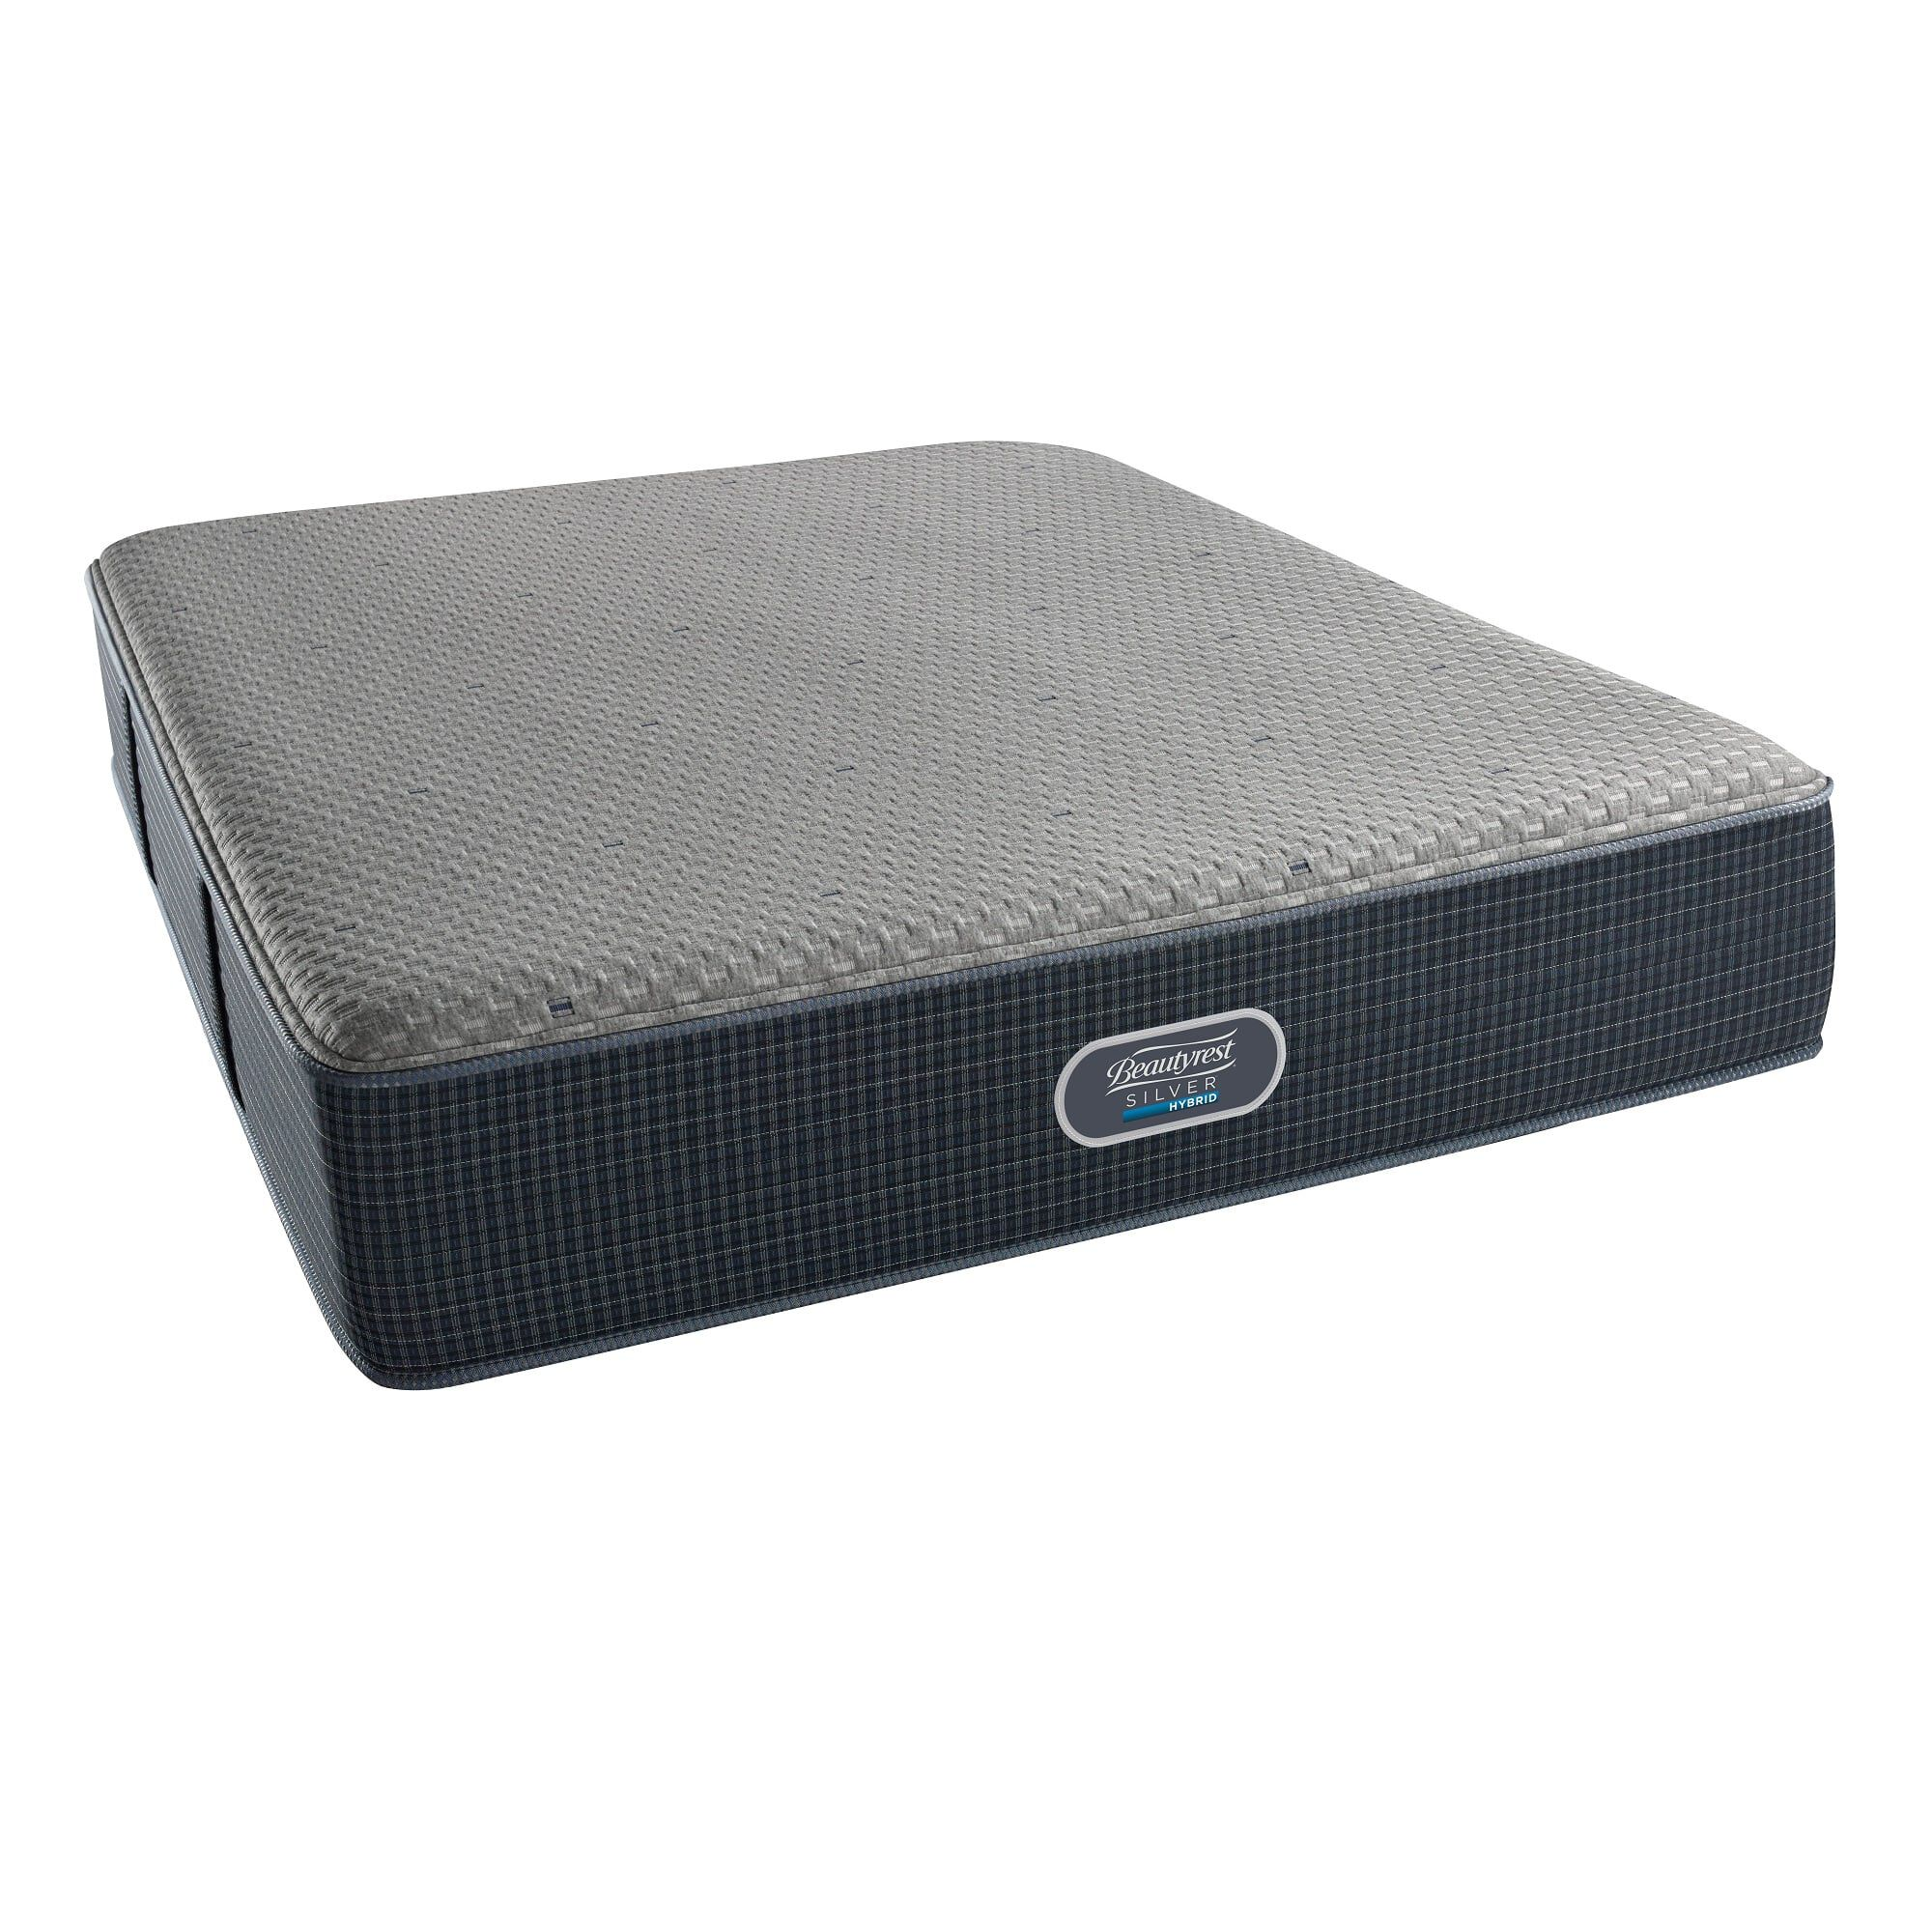 Expanded Queen Mattress Maplewood Hybrid Queen Mattress Set With Woodhaven Foundation And Protectors